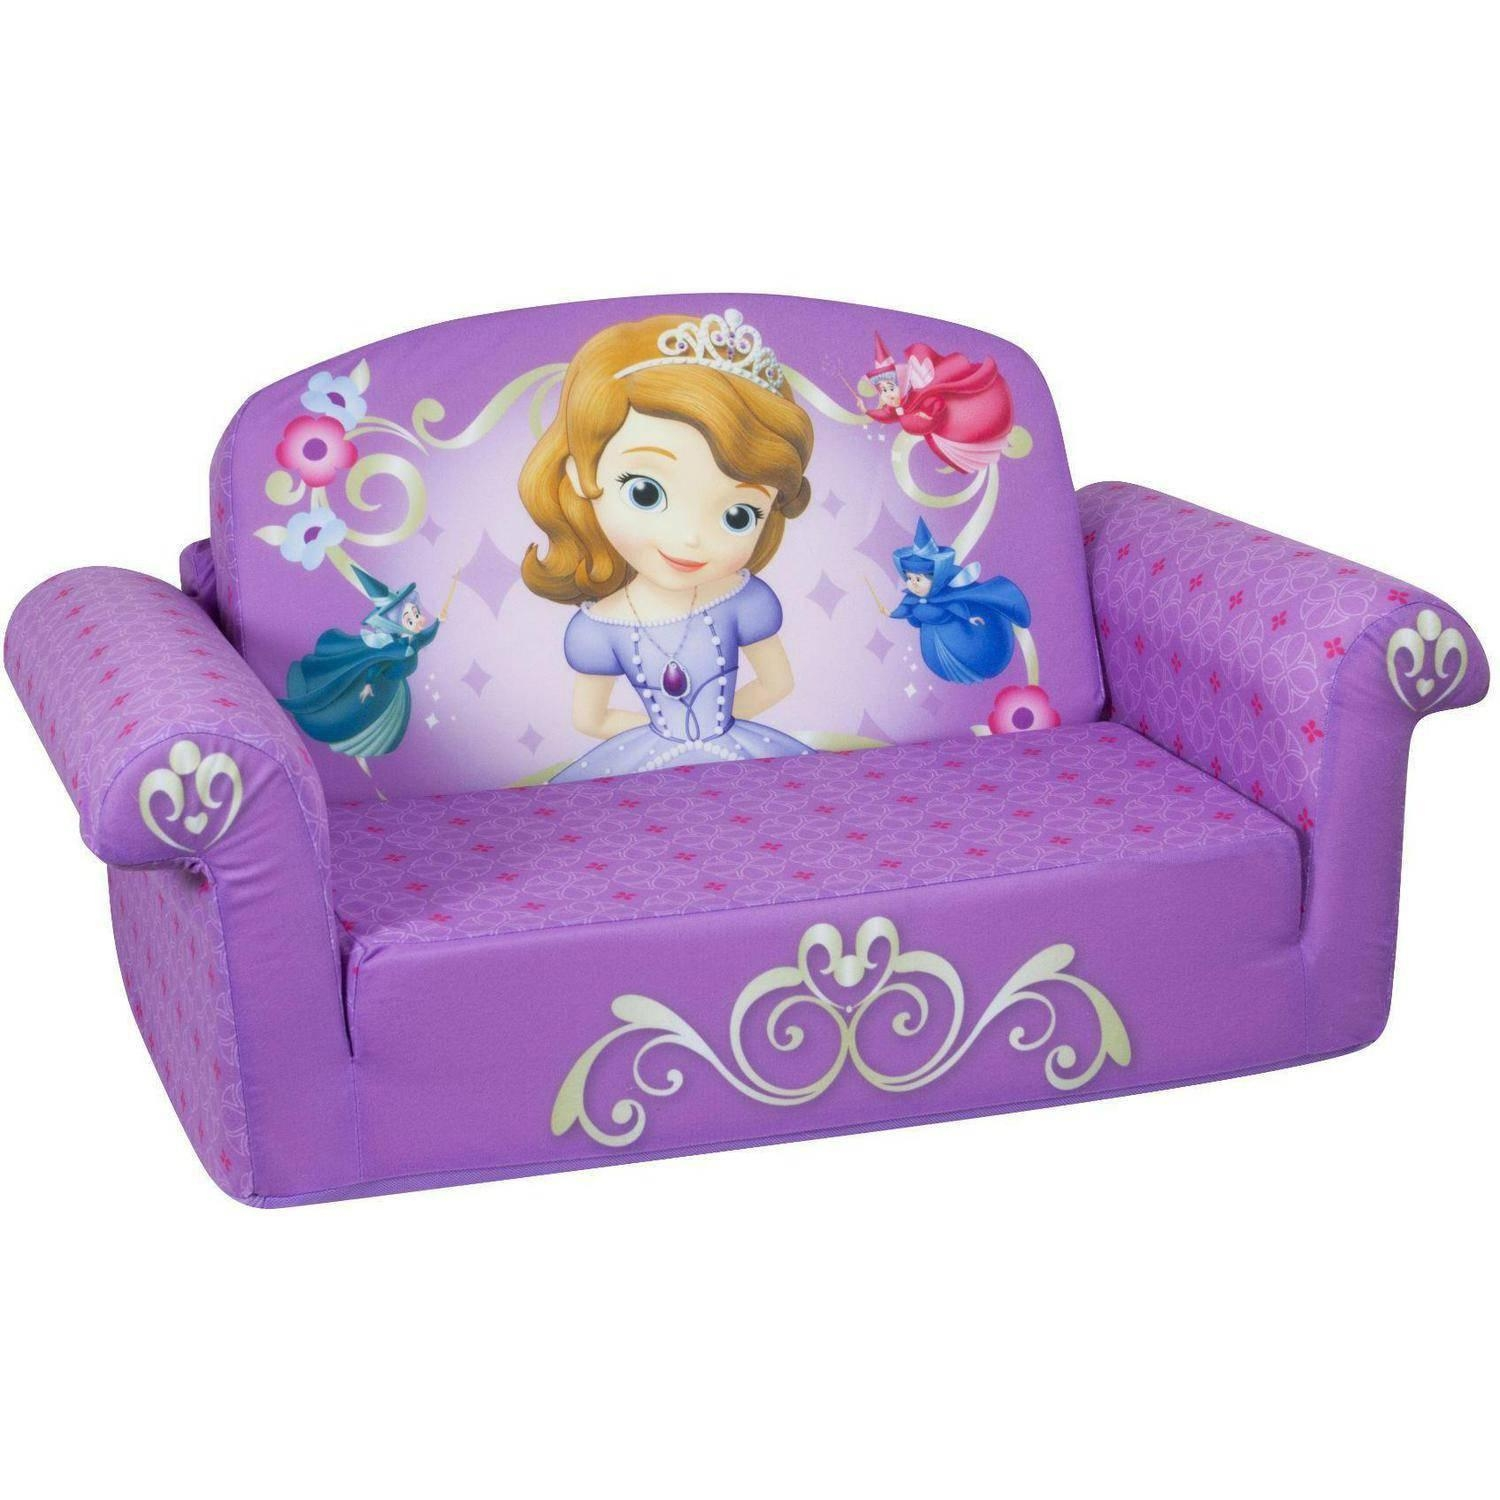 Marshmallow 2 In 1 Flip Open Sofa, Disney Sofia The First Within Disney Princess Couches (Image 11 of 20)